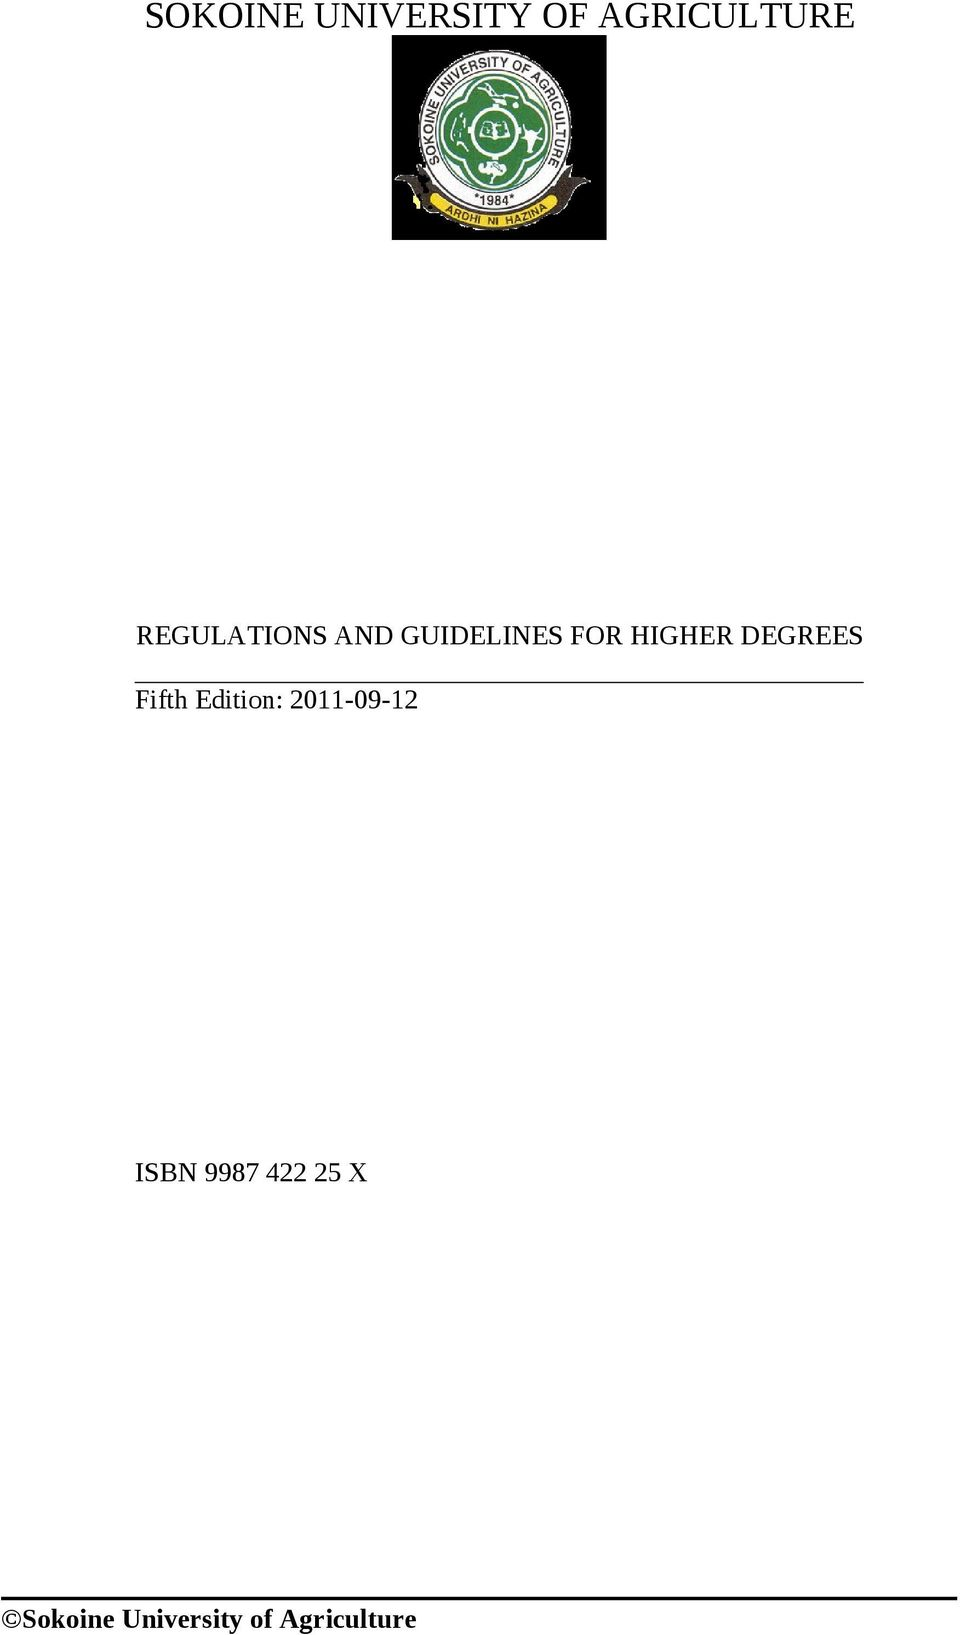 Phd thesis on renewable energy sources are